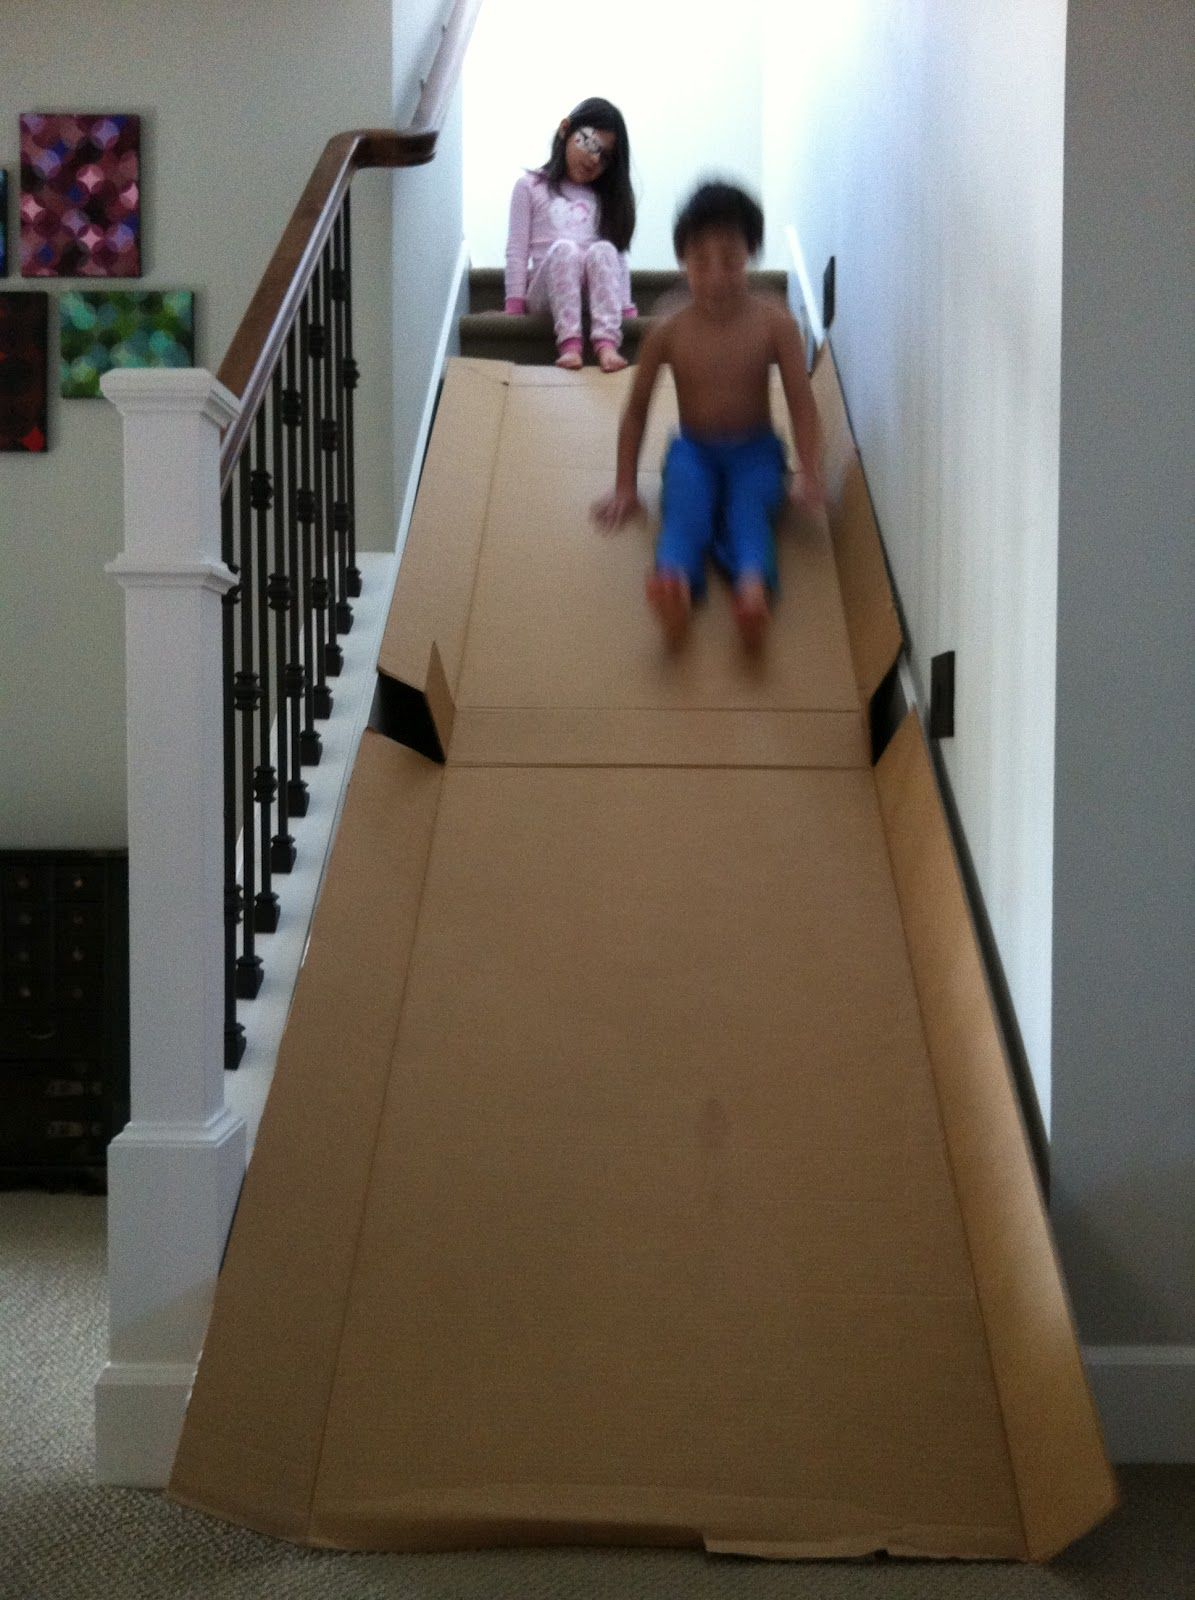 Cardboard Slide Stair Slide Diy Slides Diy For Kids